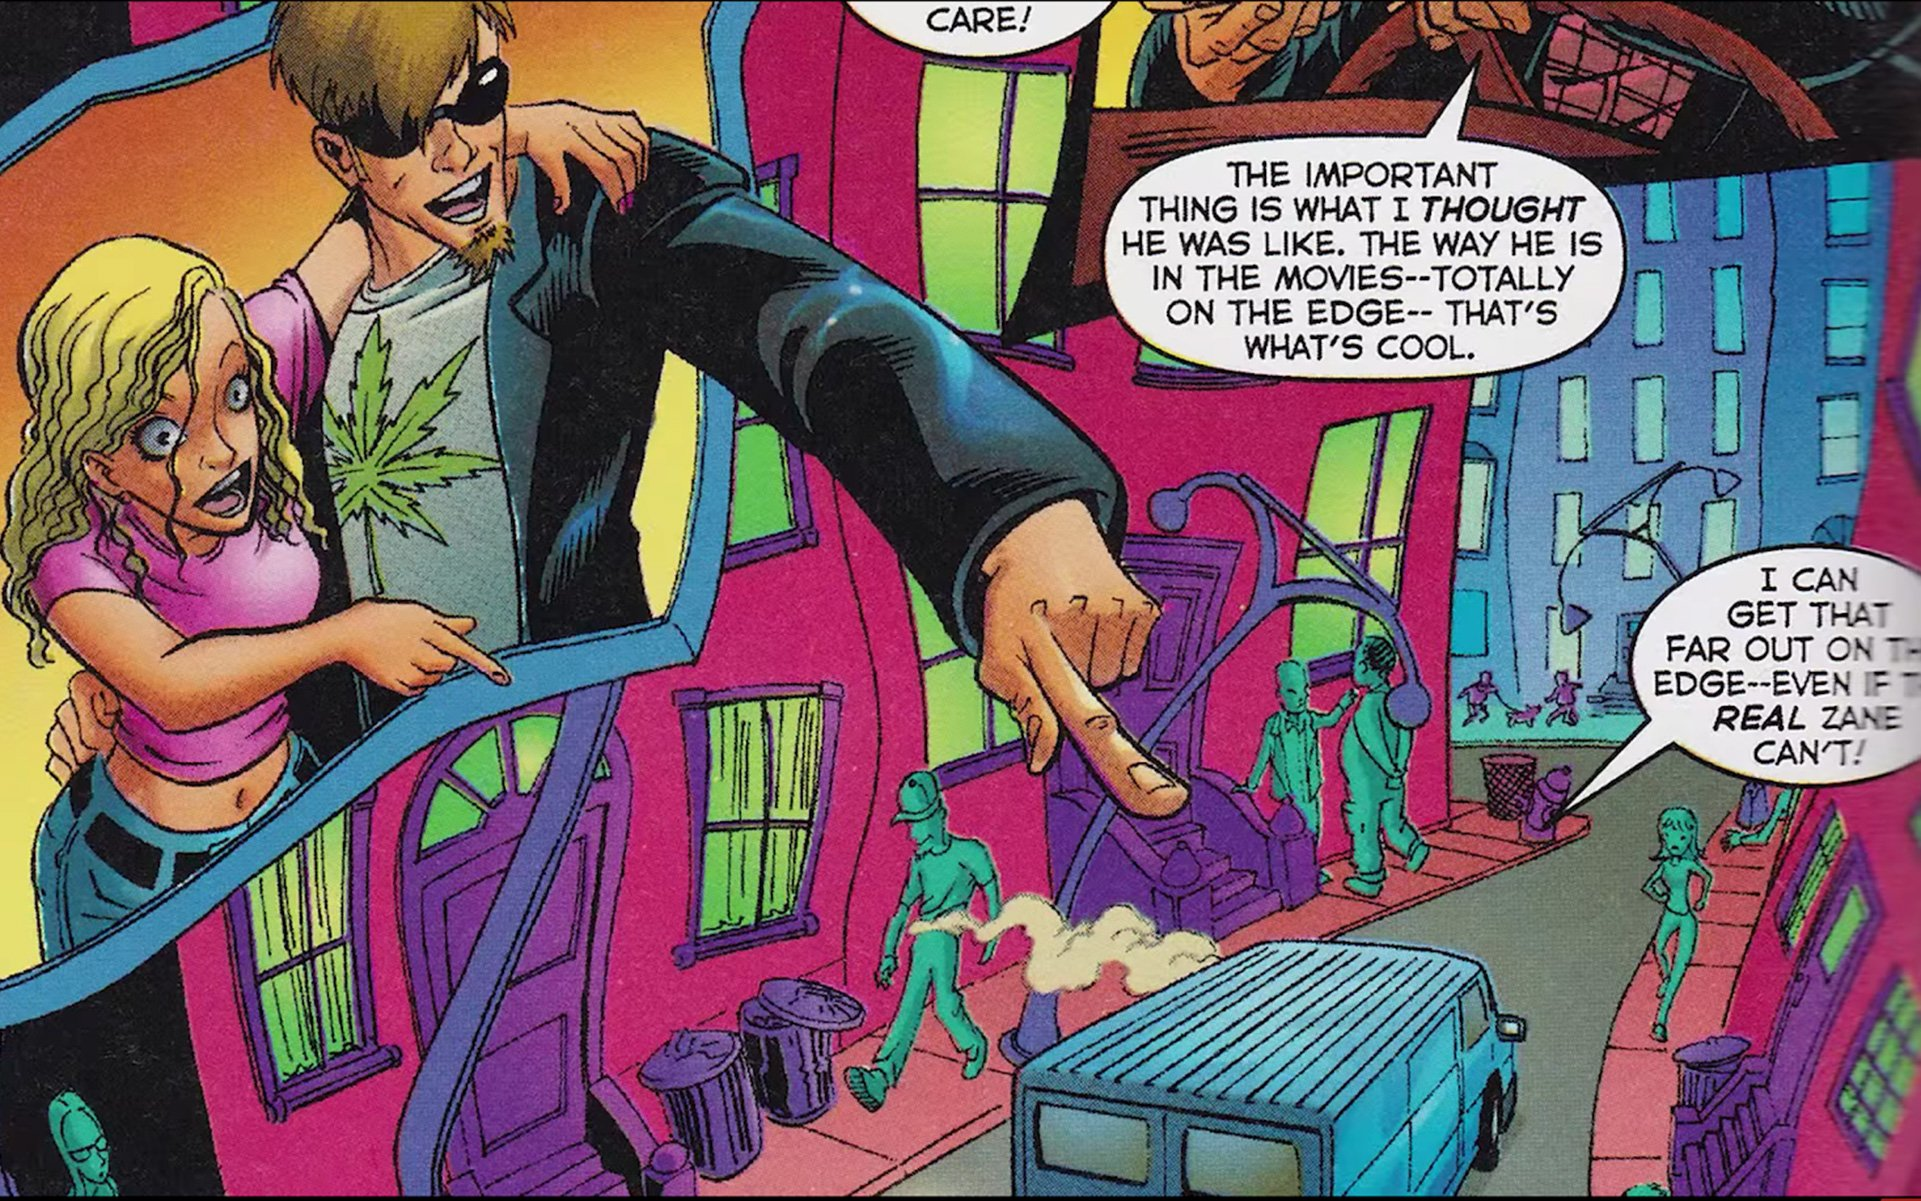 The White House and Spider-Man's Anti-Weed Comic, Fastlane | Leafly